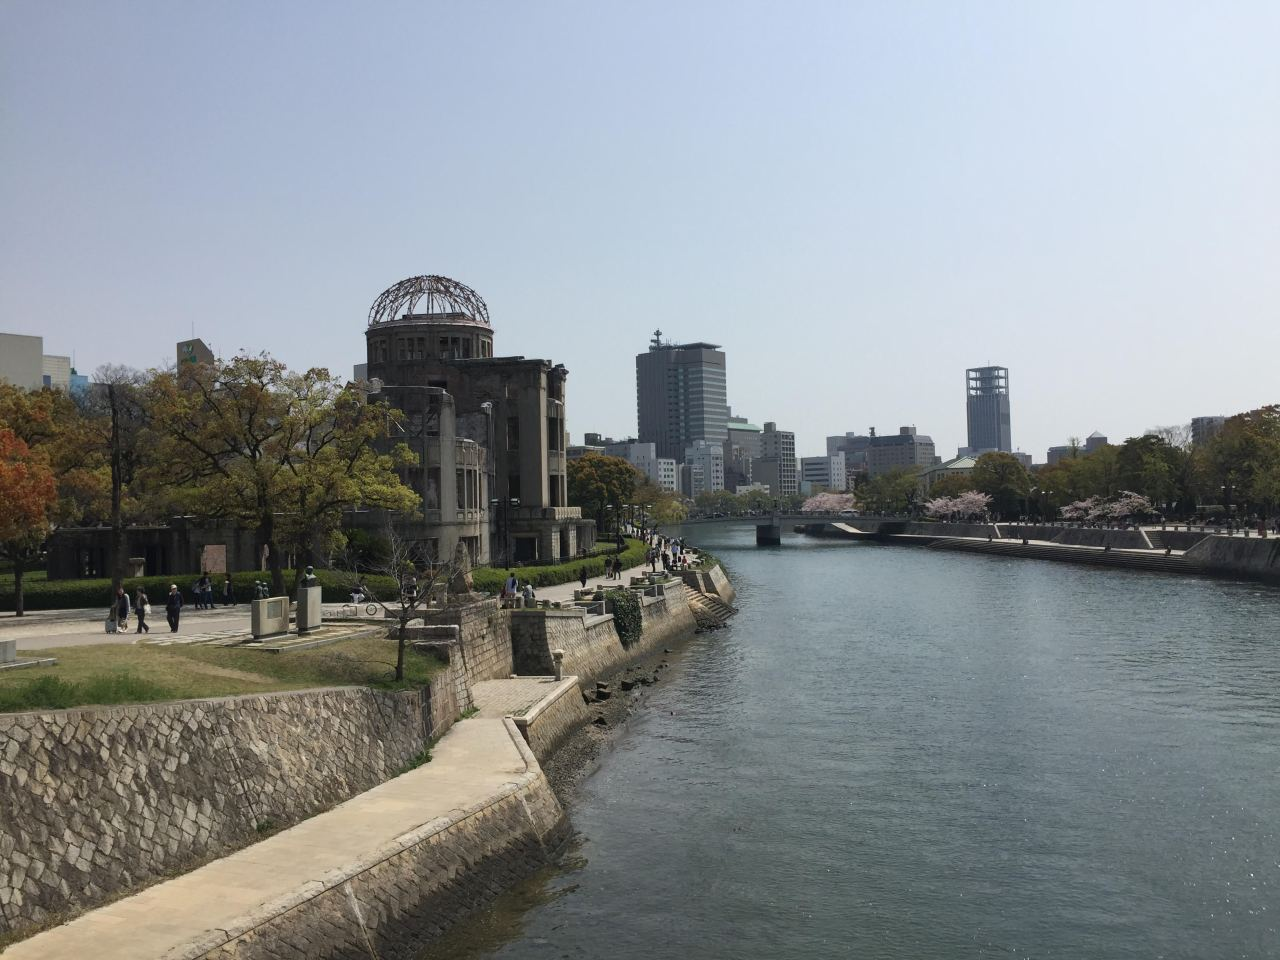 Hiroshima 6th August 1945